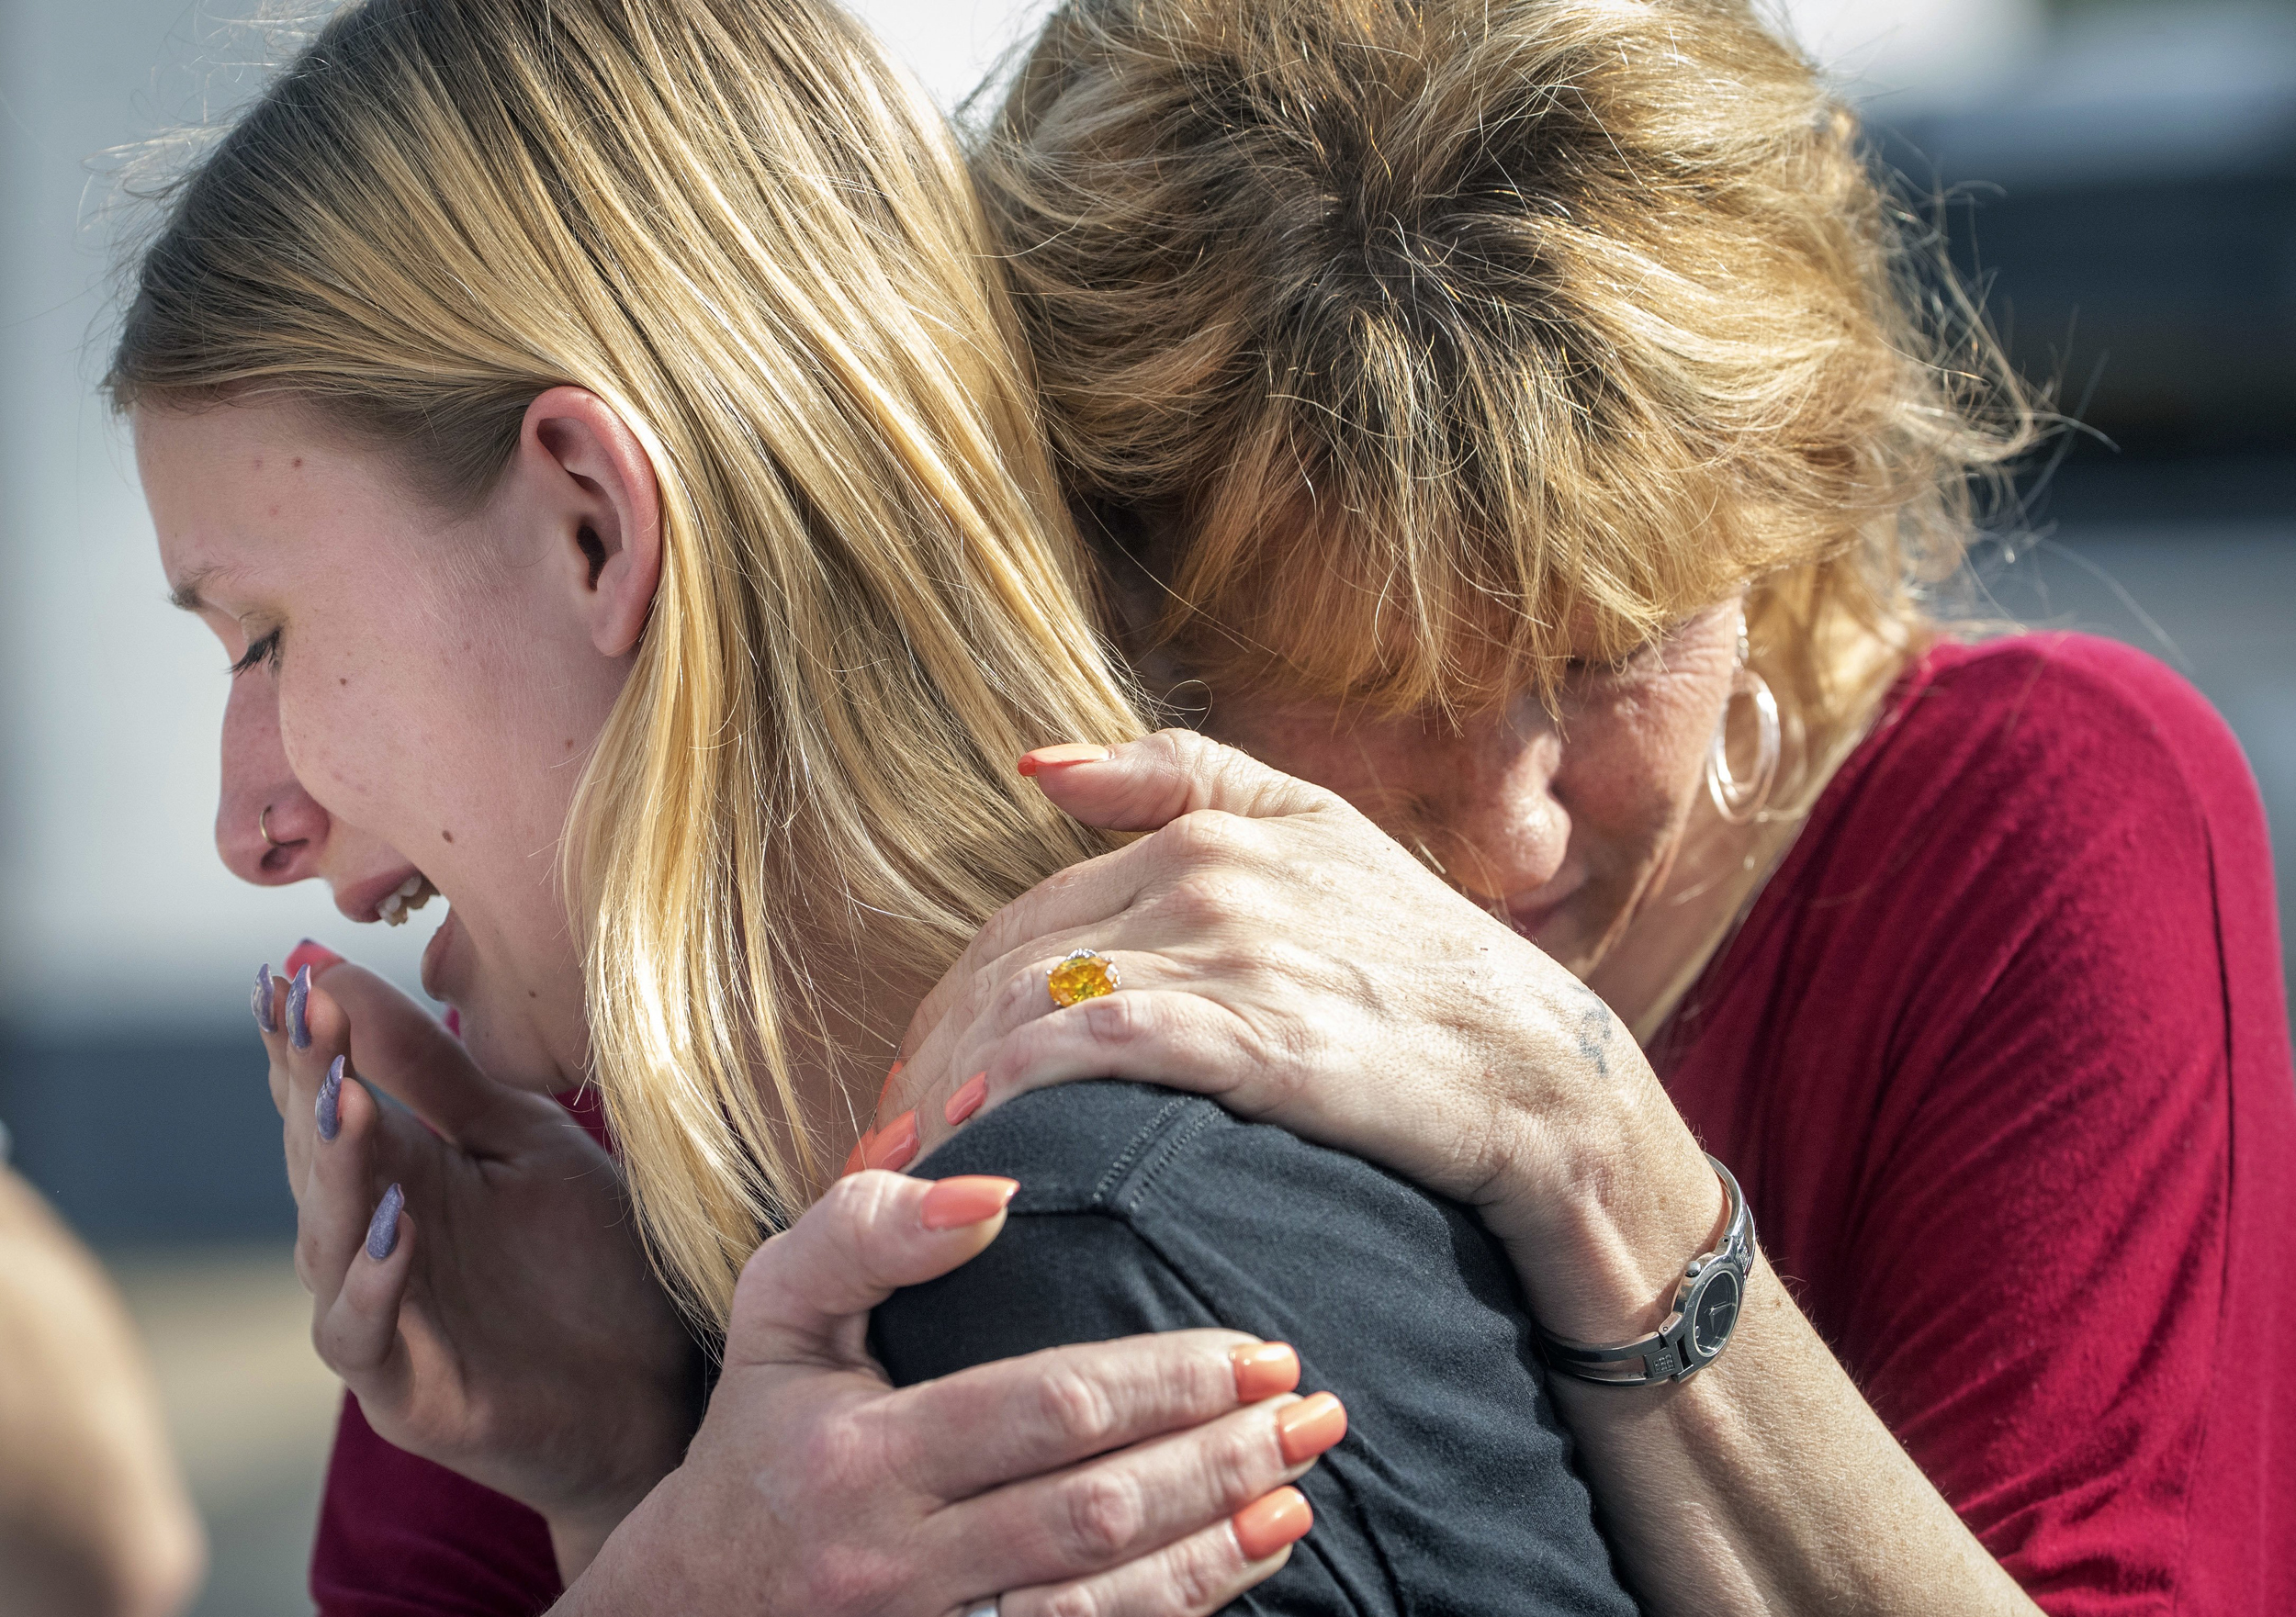 Several people killed in shooting at Texas high school, suspect in custody